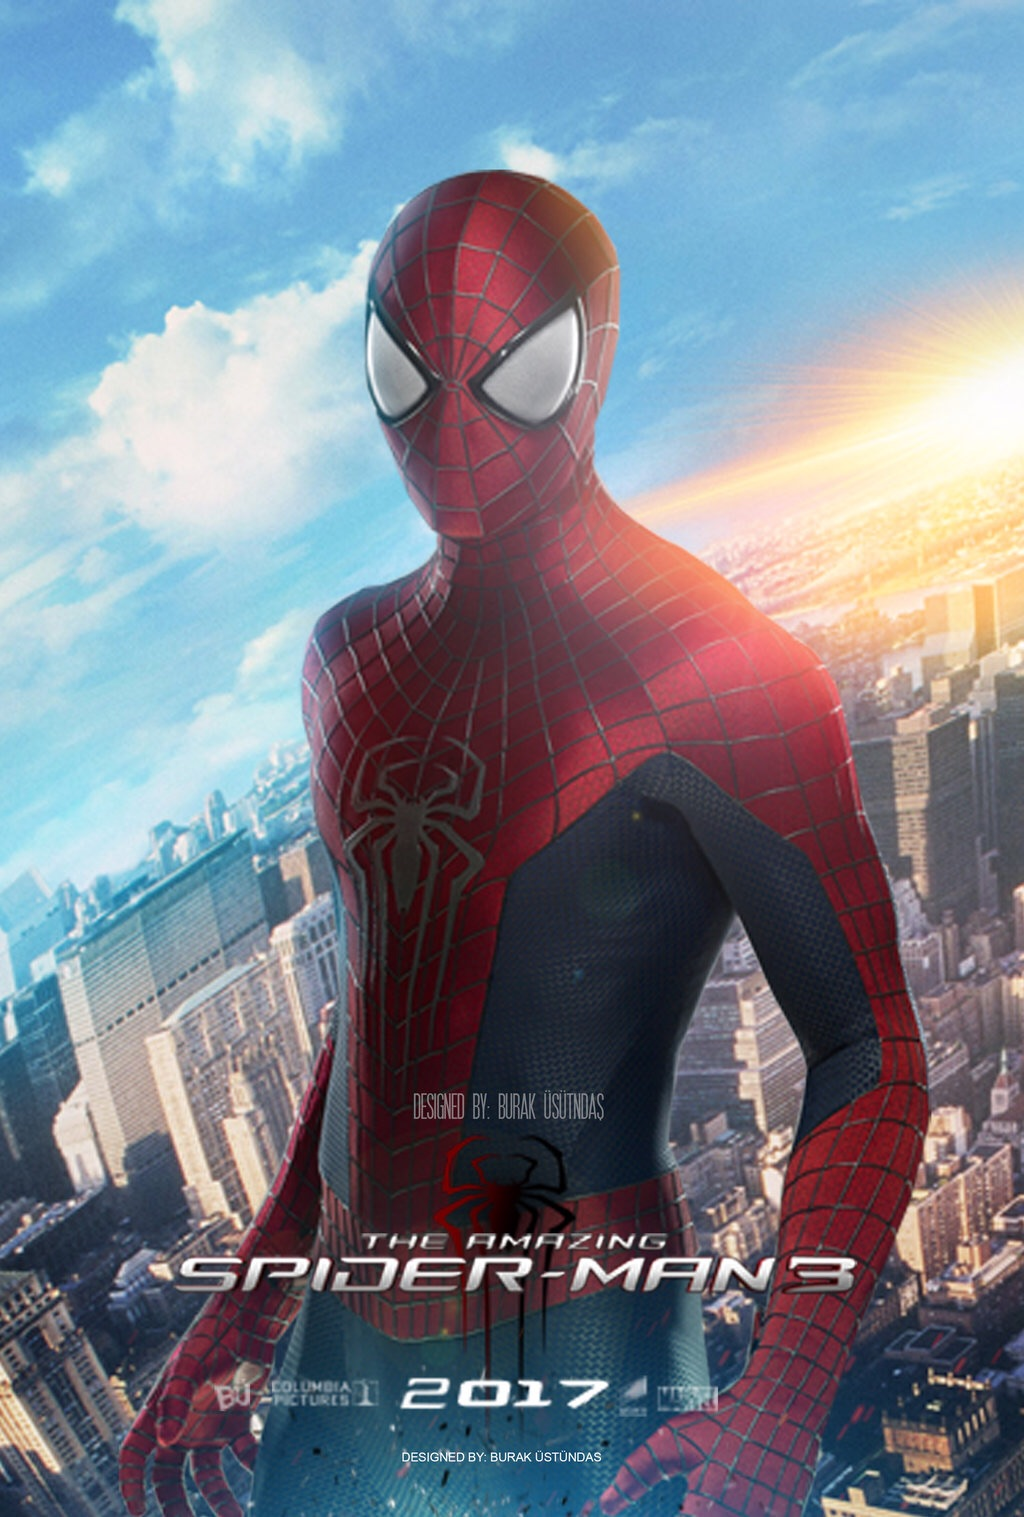 Spider-Man: Homecoming gets a new Chinese poster